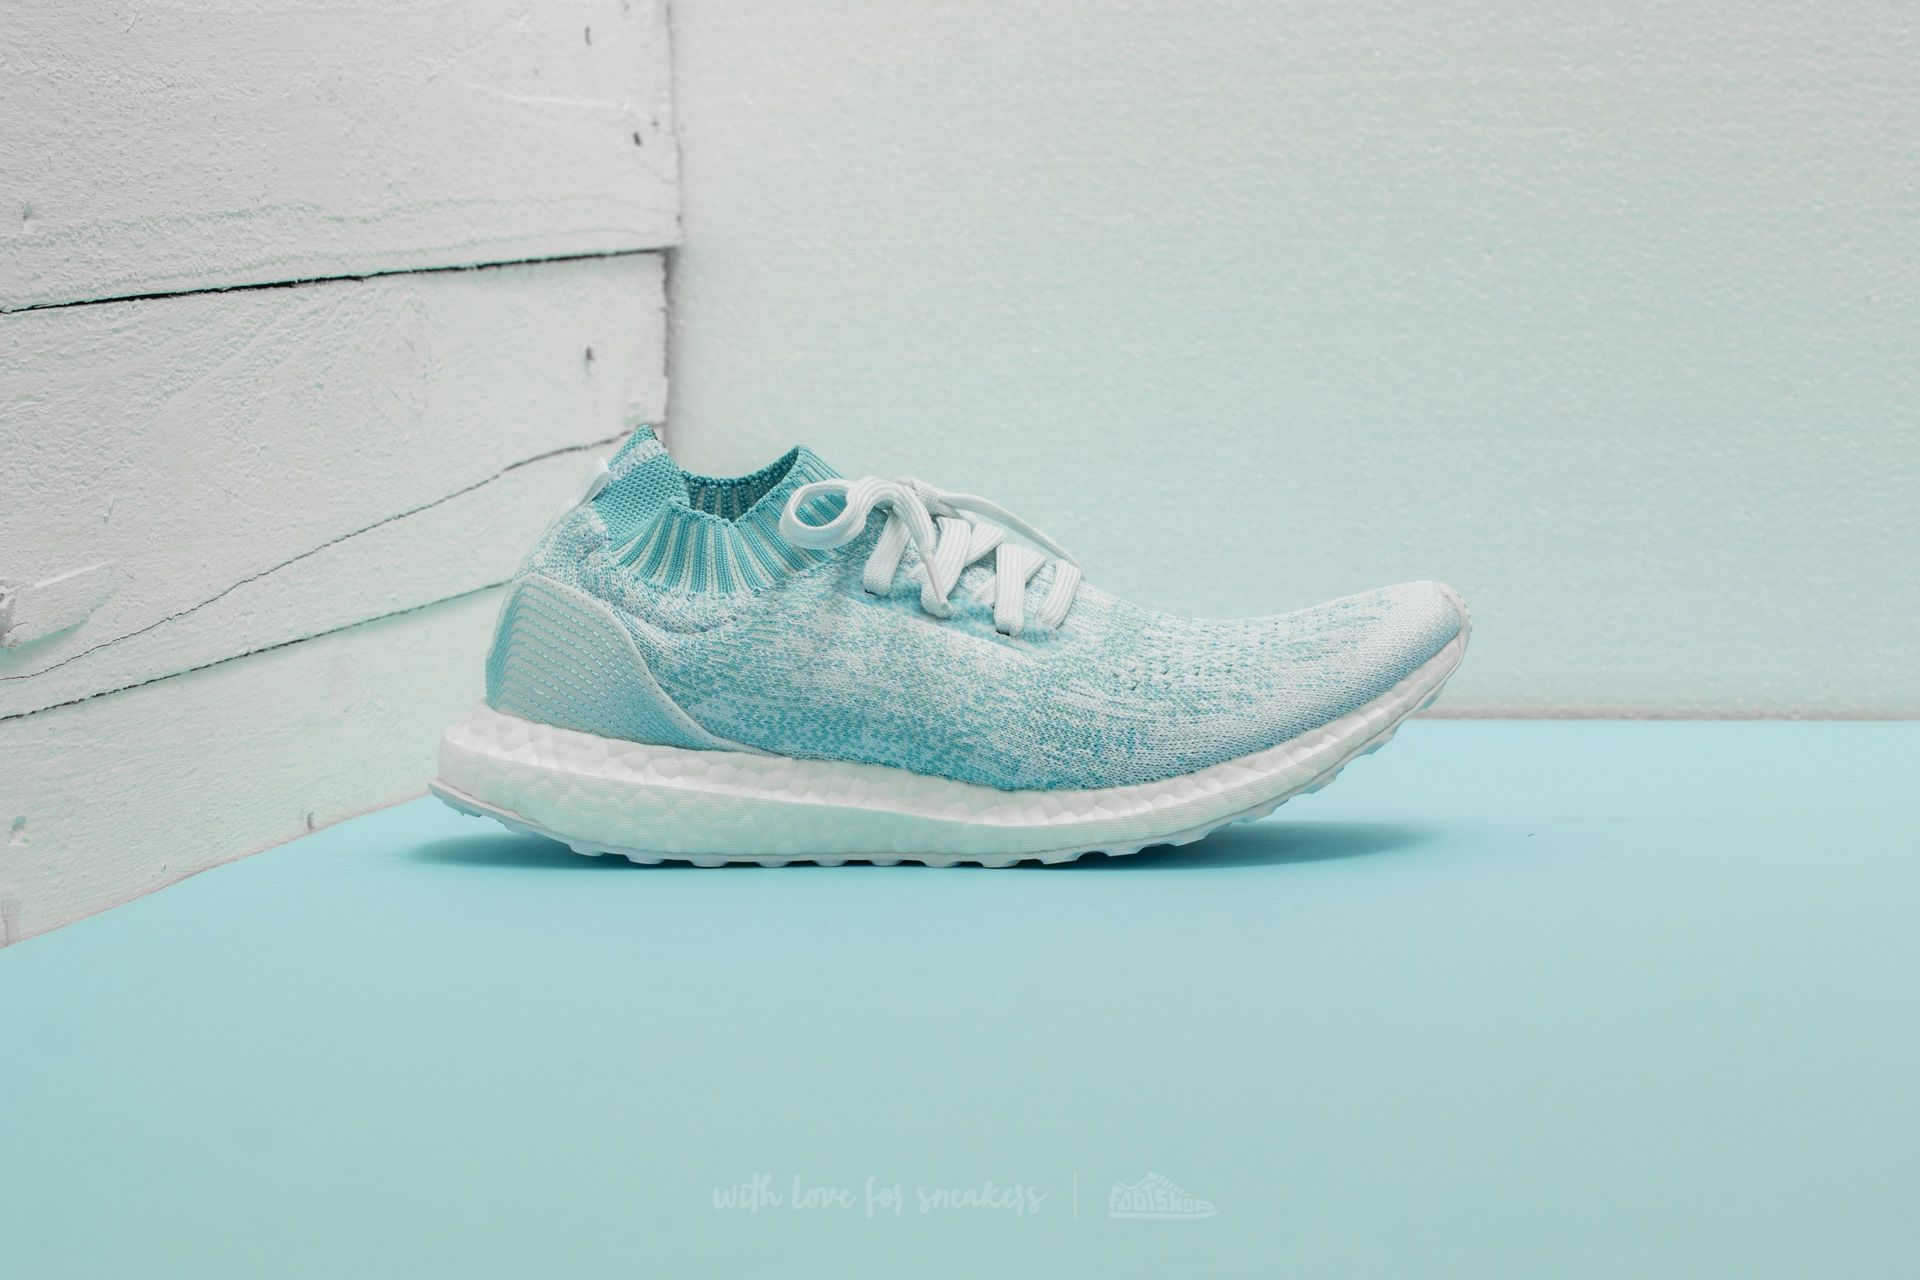 reputable site e4dd3 5edd0 adidas x Parley UltraBoost Uncaged Icey Blue/ Ftw White ...